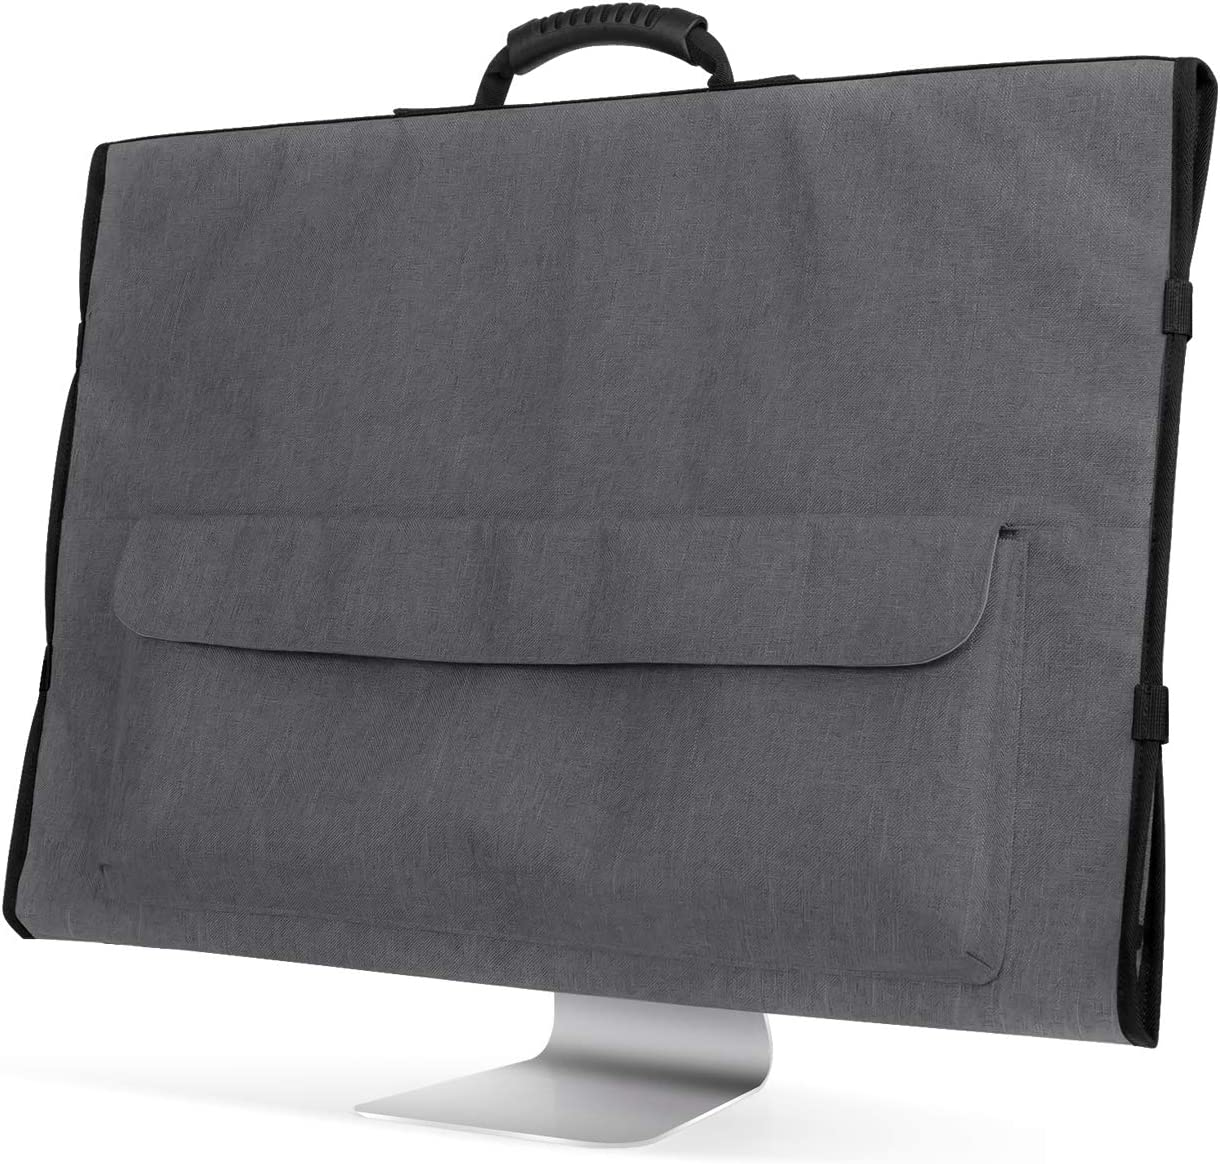 Protective Storage Bag Monitor Dust Cover with Rubber Handle for 21.5 iMac Screen and Accessories Gray Curmio Travel Carrying Case for Apple 21.5 iMac Desktop Computer